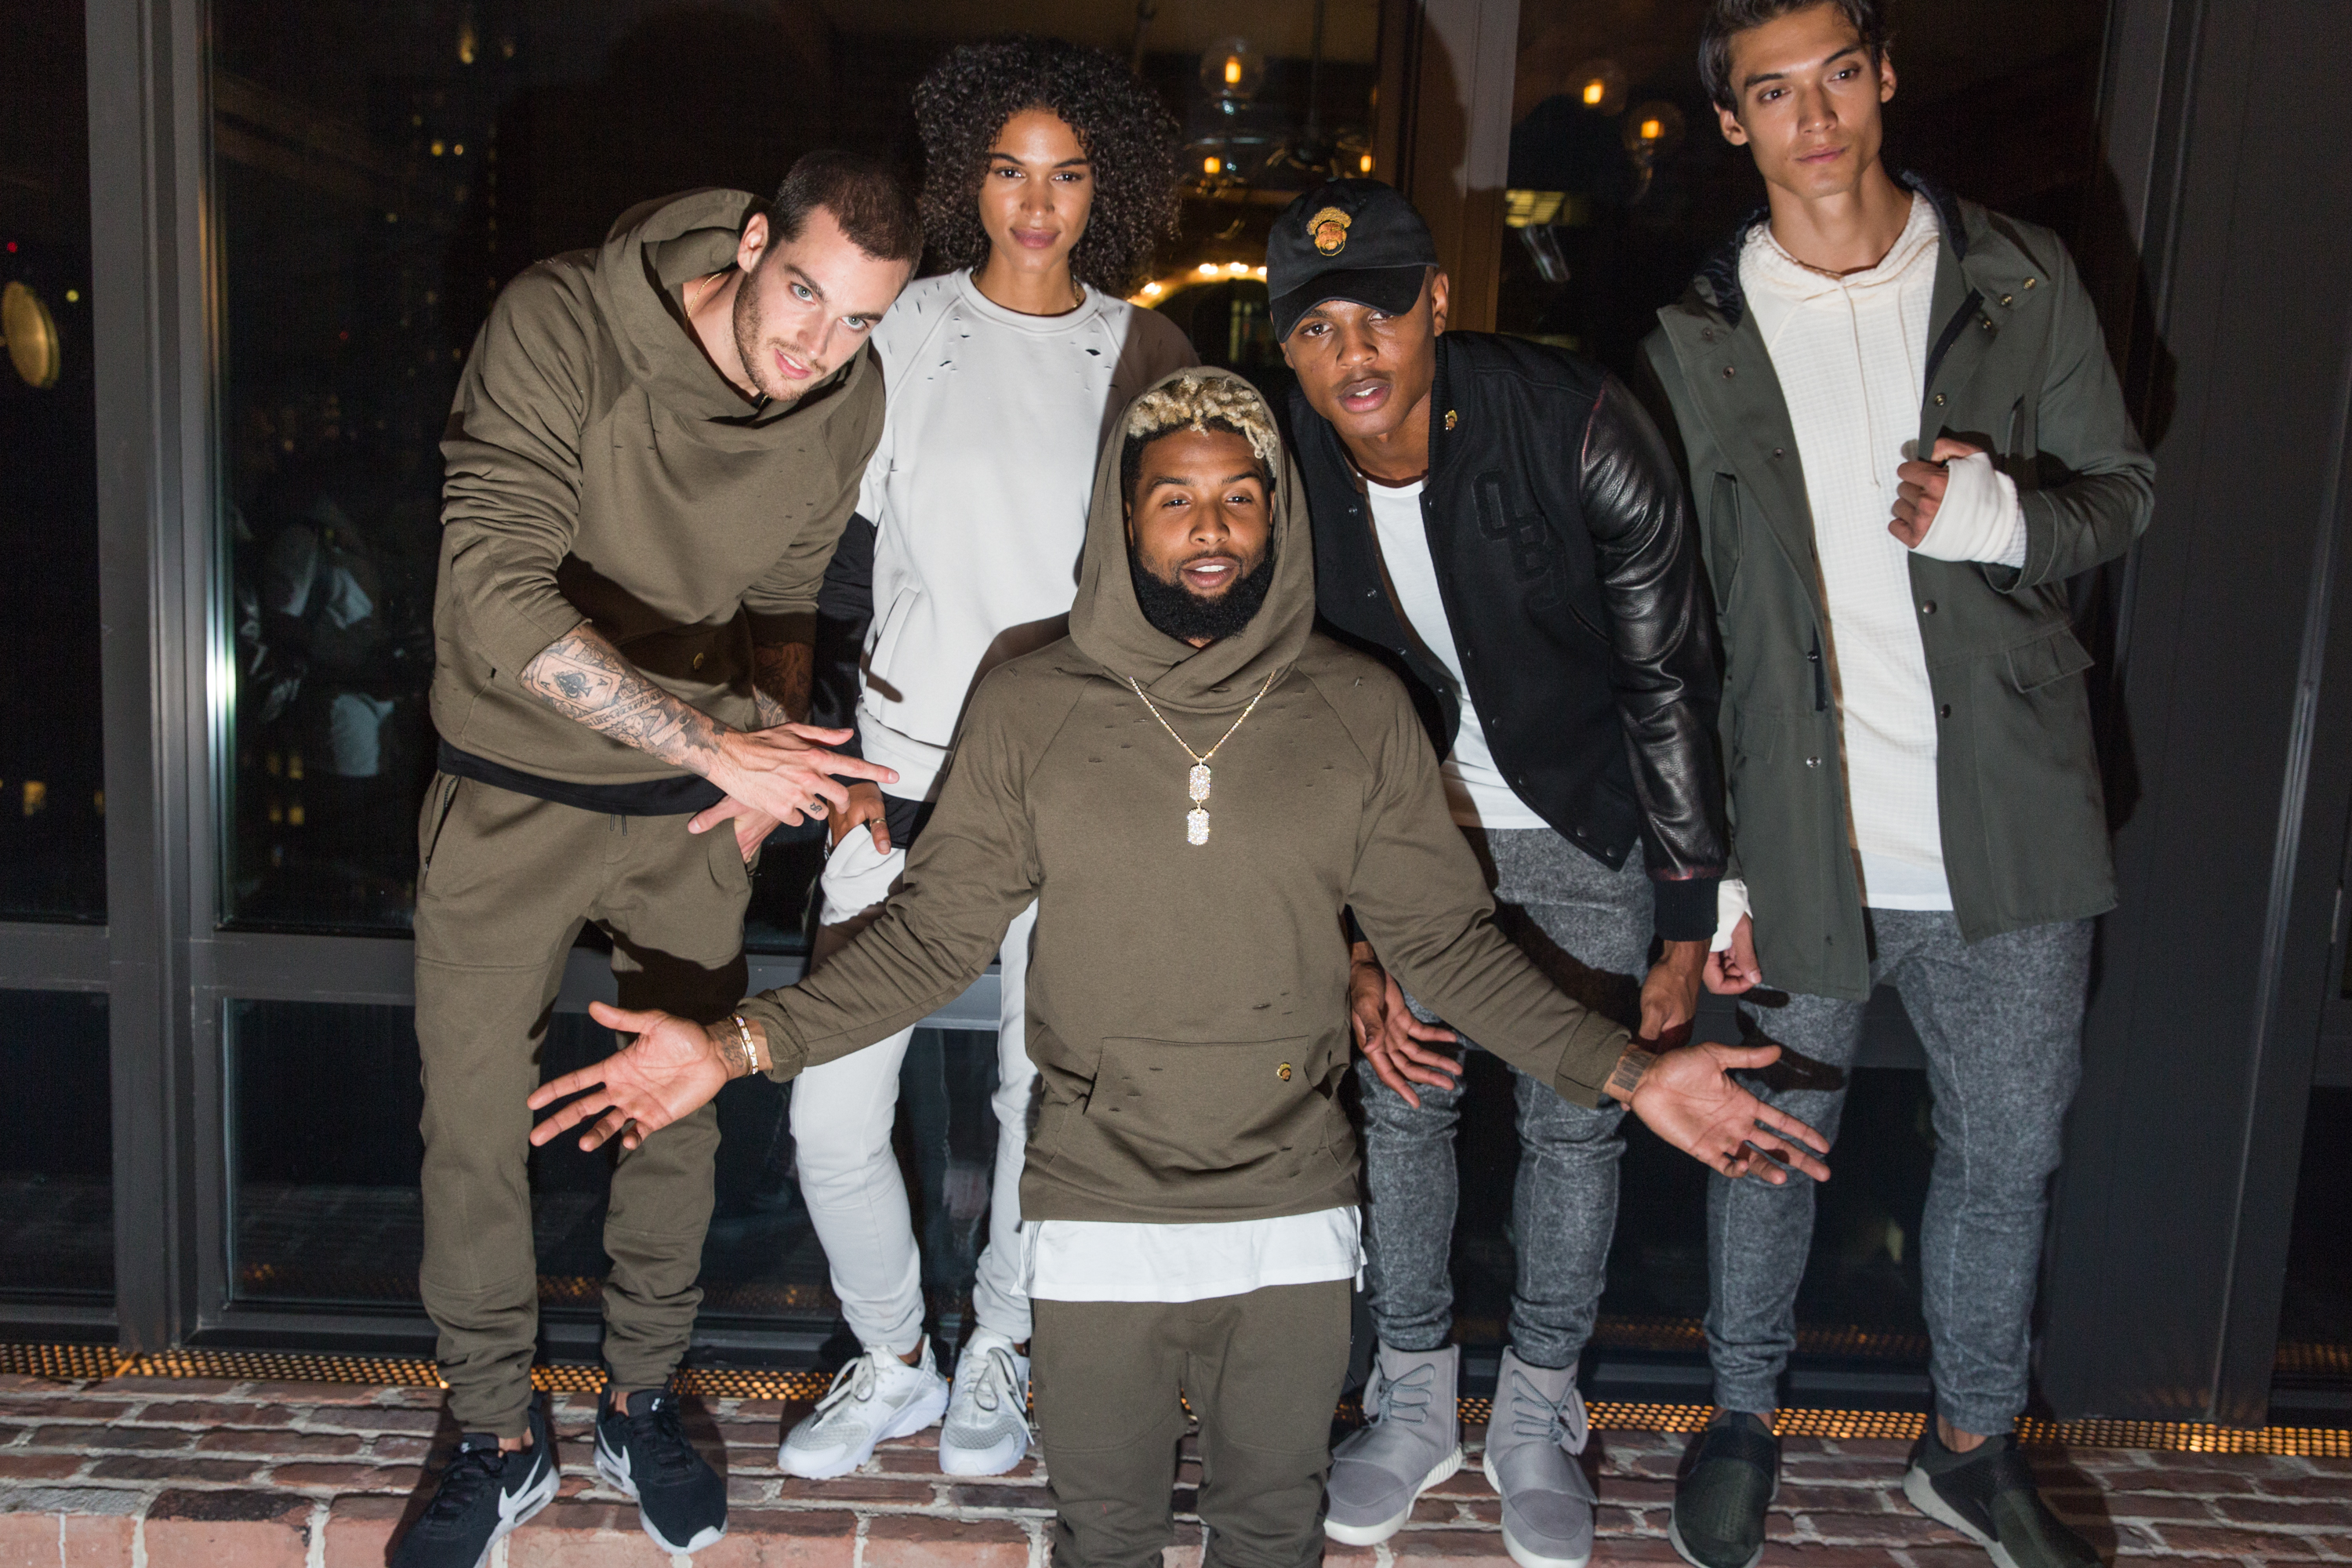 Odell Beckham Jr with models at 13 x twenty launch